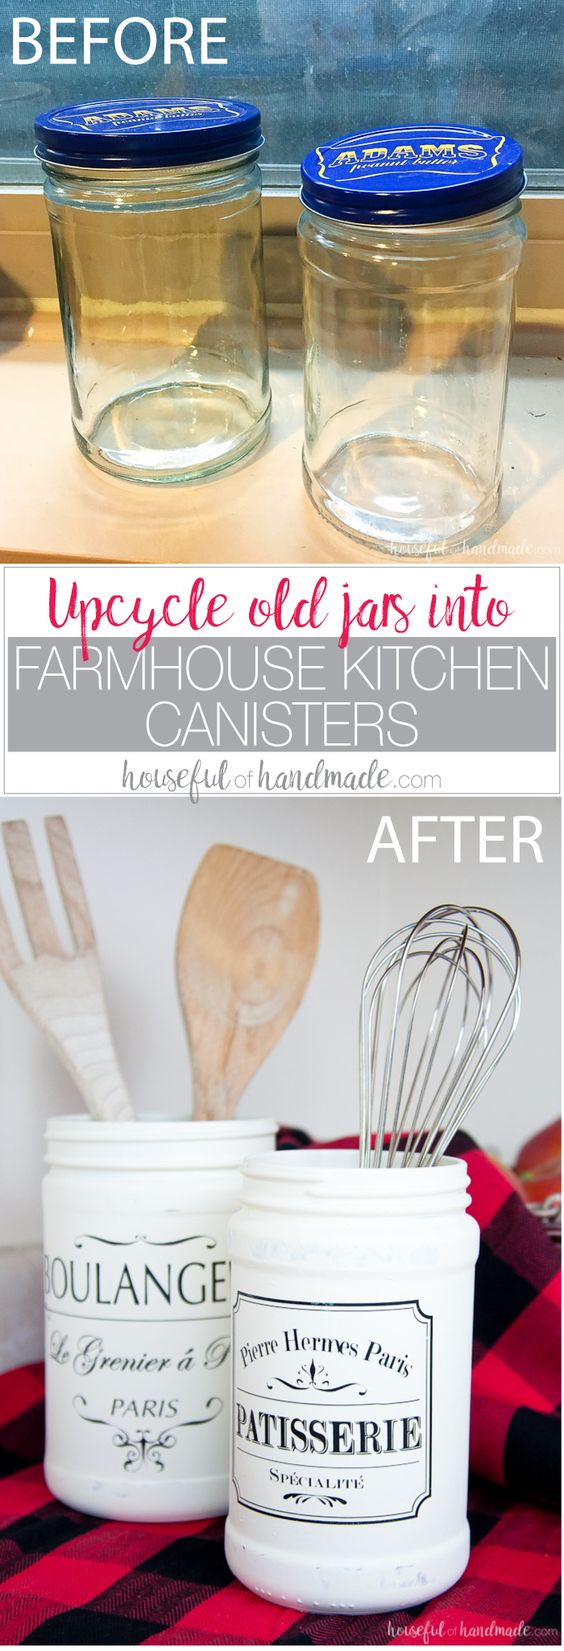 DIY Farmhouse Kitchen Canisters.